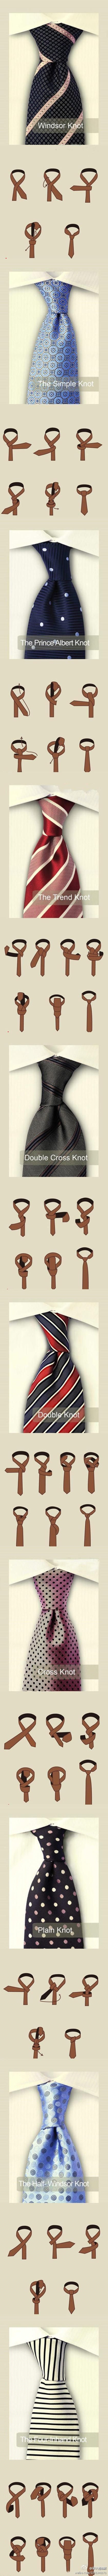 Know your knots for tying your ties.